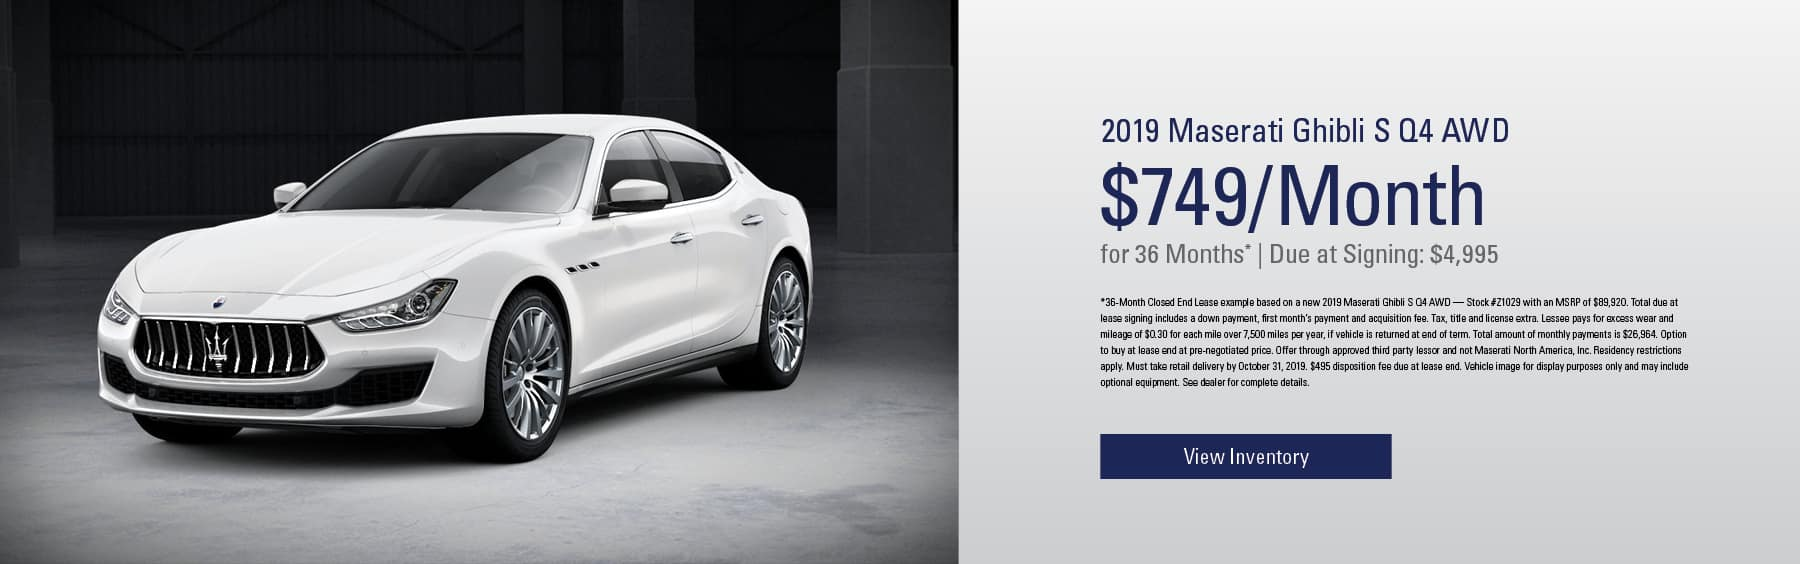 2019 Maserati Ghibli S Q4 AWD 749/ 36 months for mobile